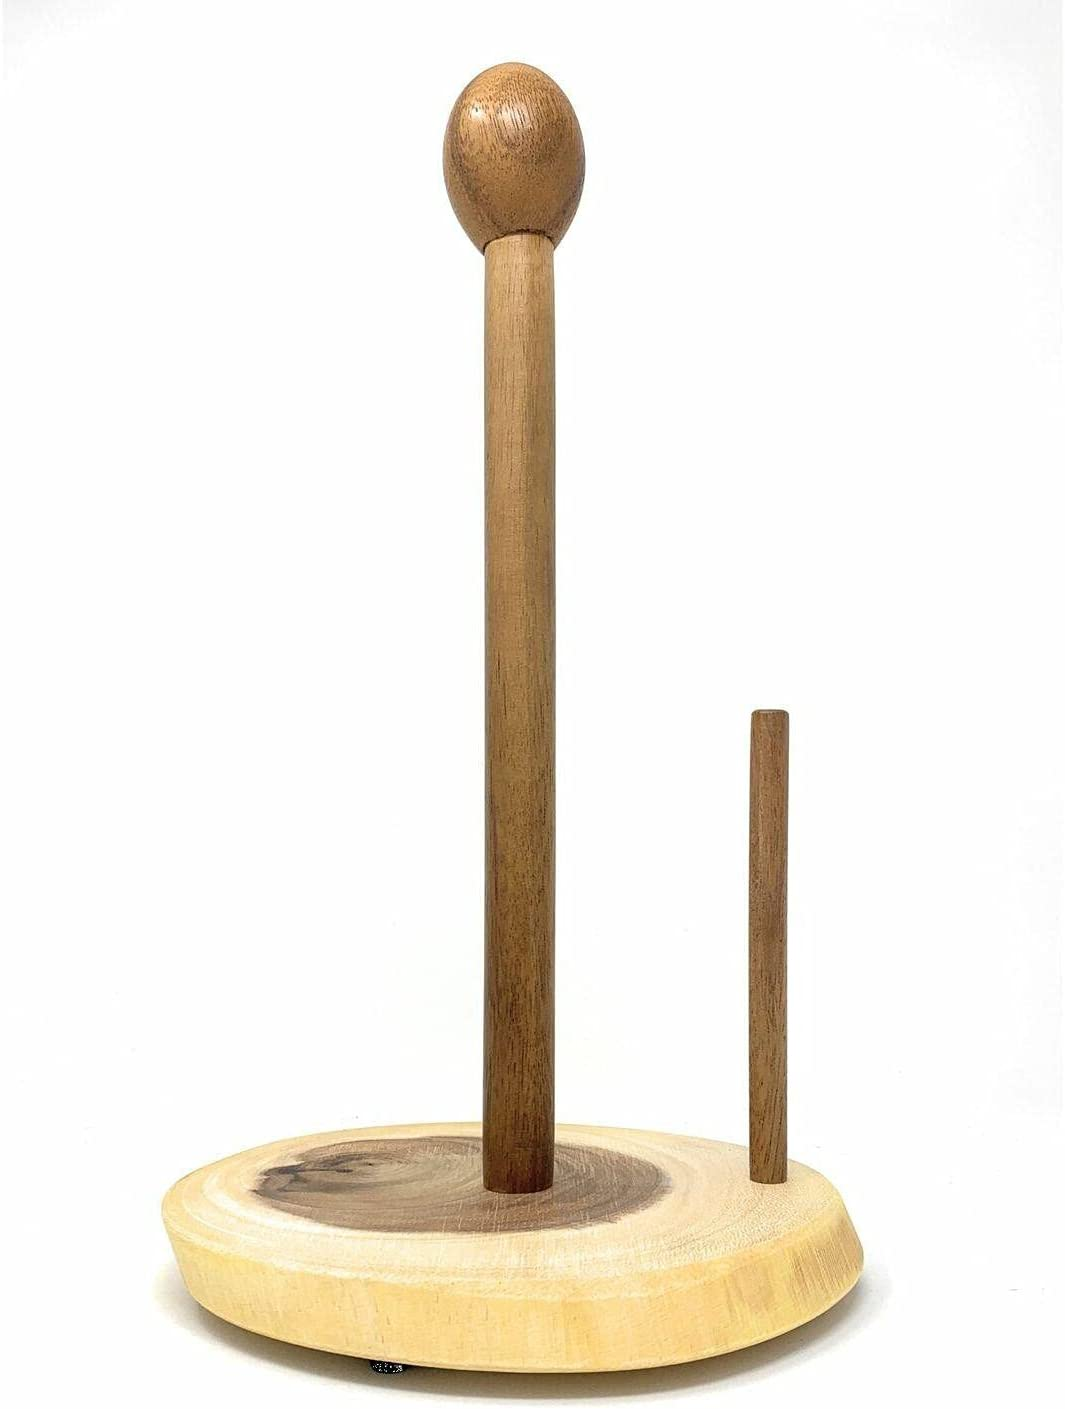 Acacia Standing Towel Holder with Slab B Posthome and Spasm price Decor Base Popular product